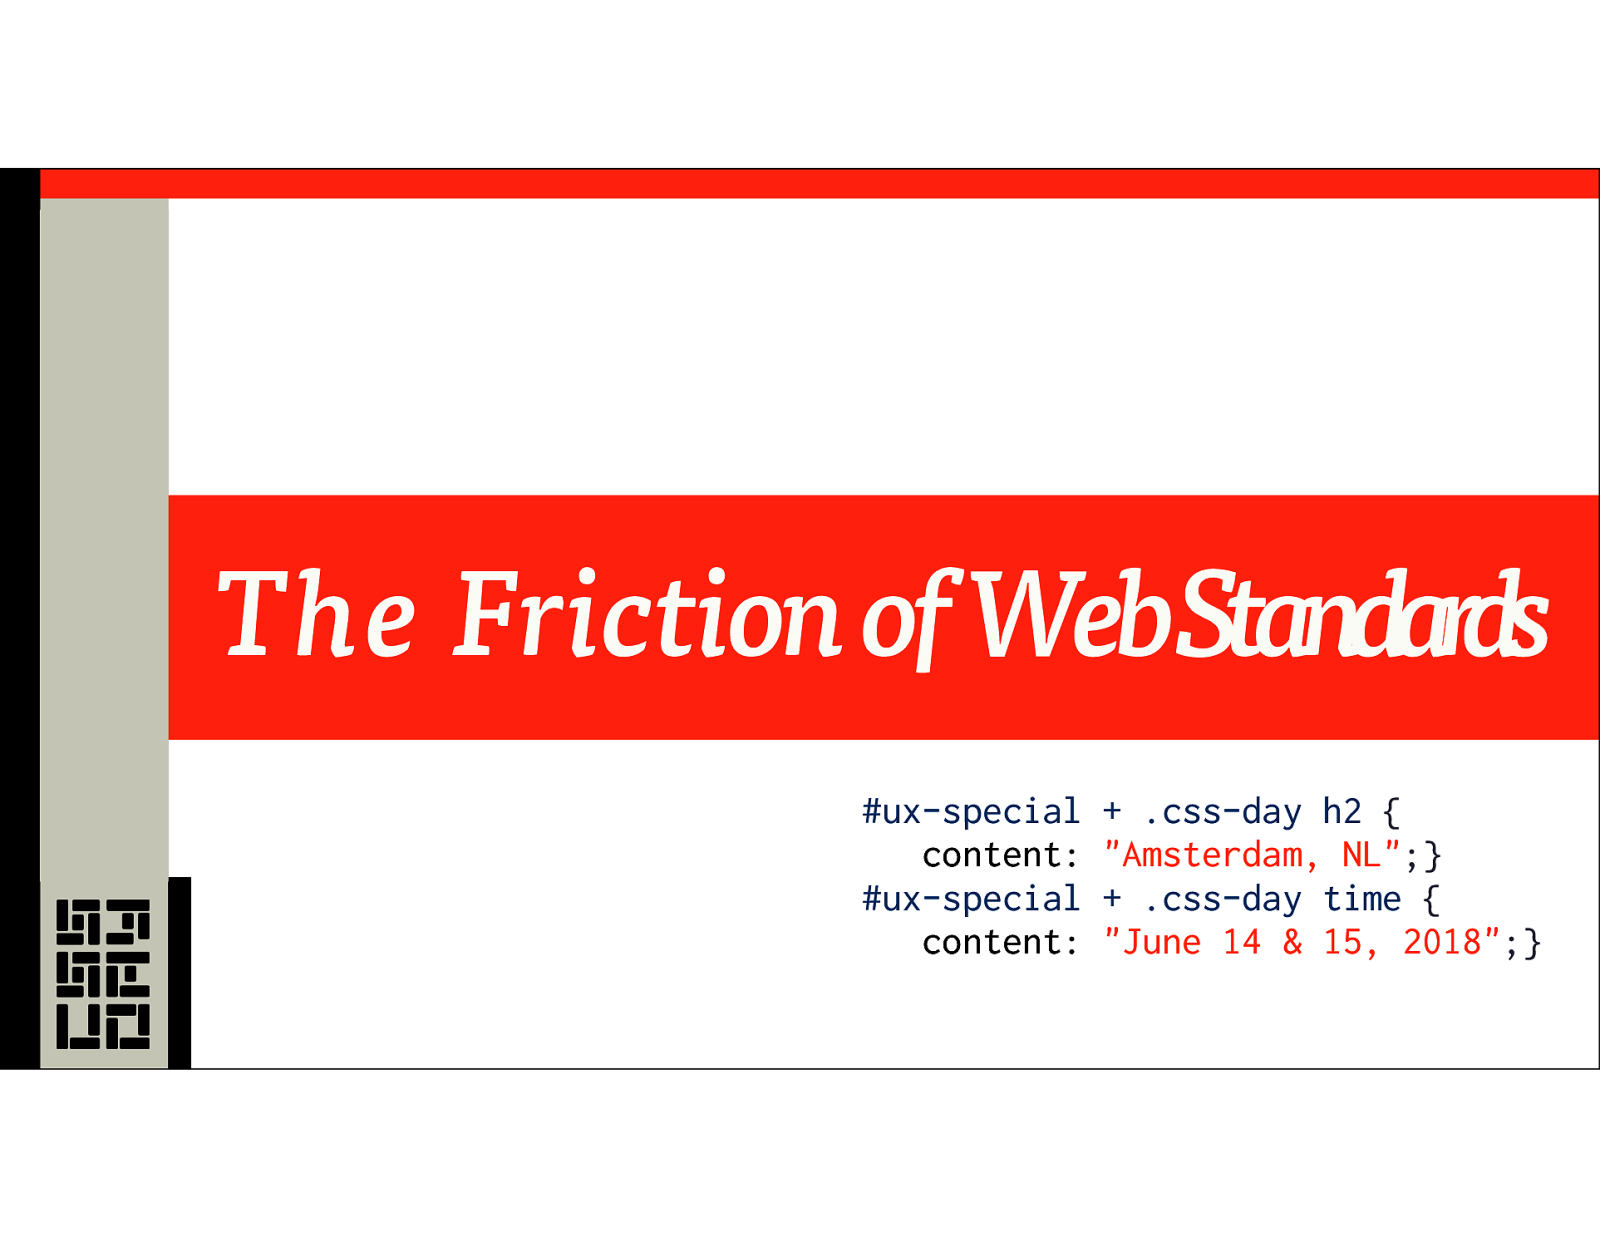 The Friction of Web Standards